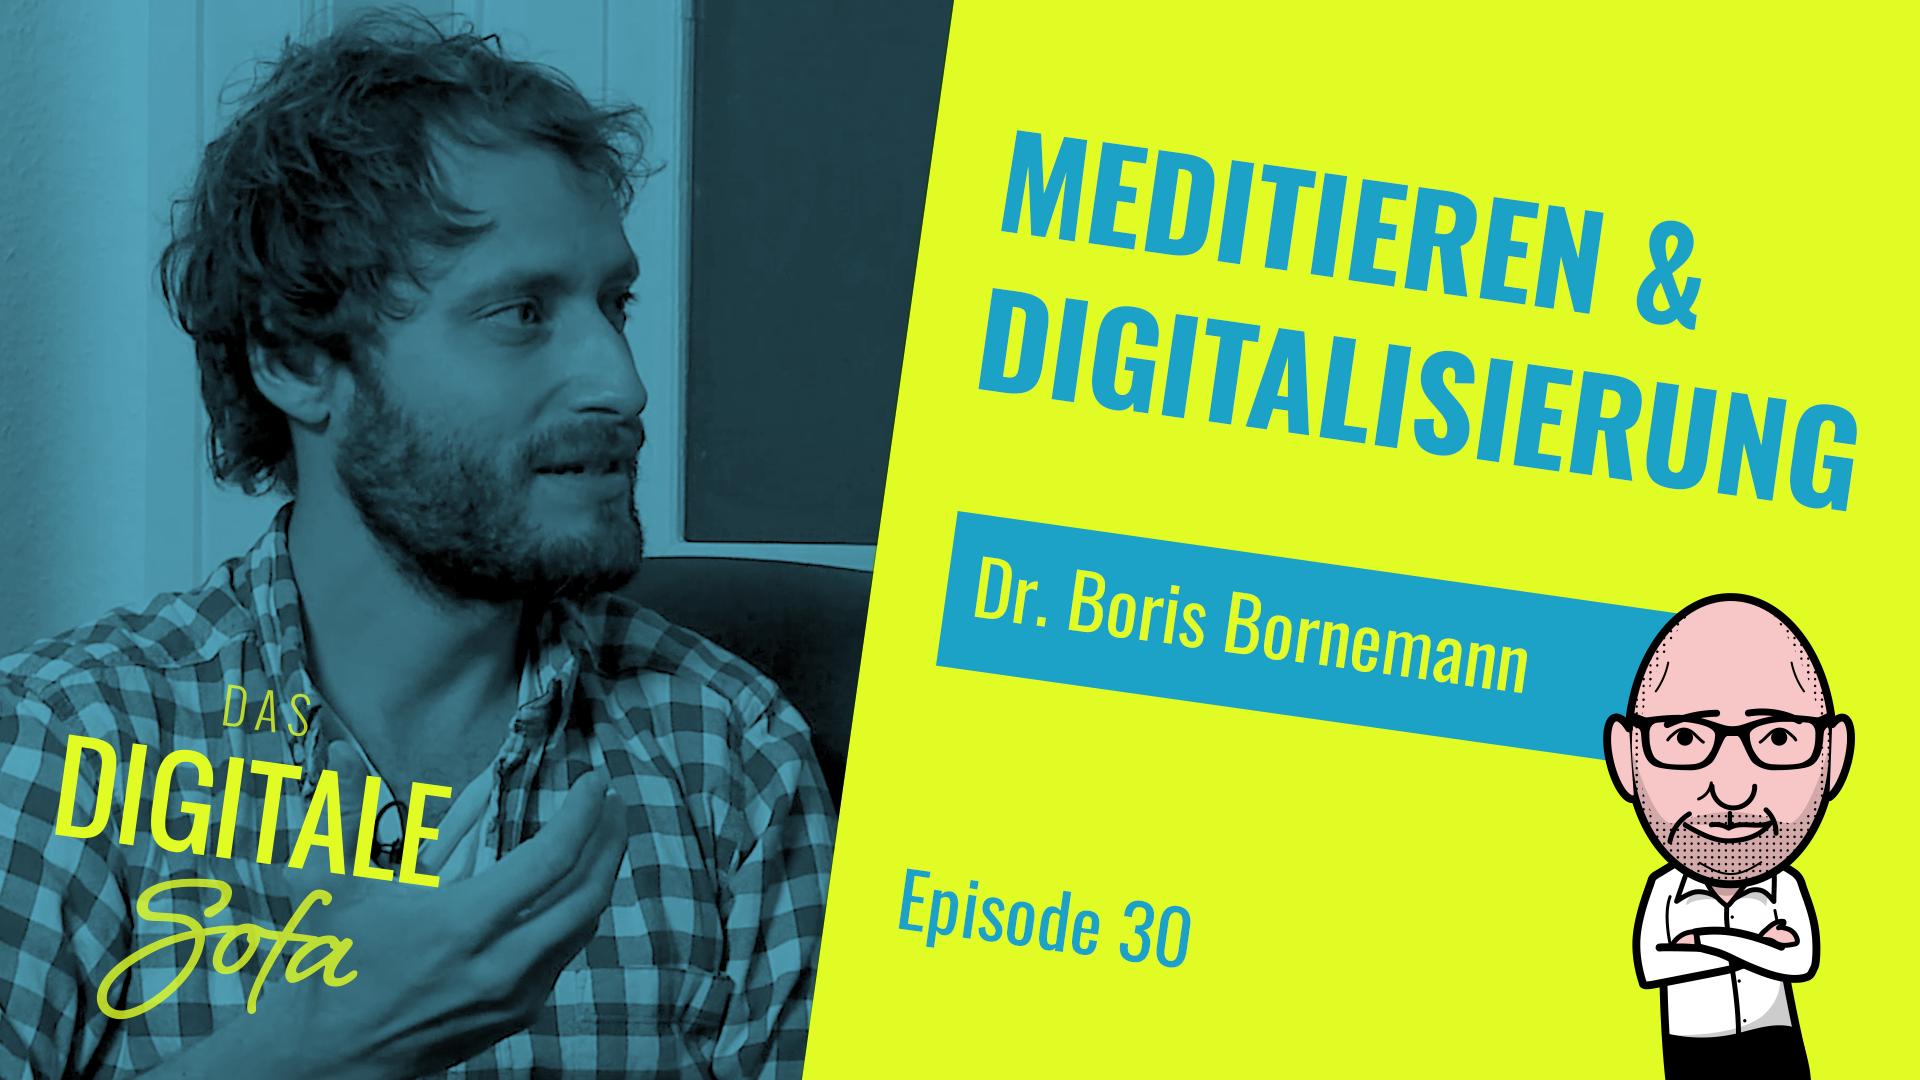 MEDITIEREN & DIGITALISIERUNG – DAS DIGITALE SOFA #30 MIT DR. BORIS BORNEMANN